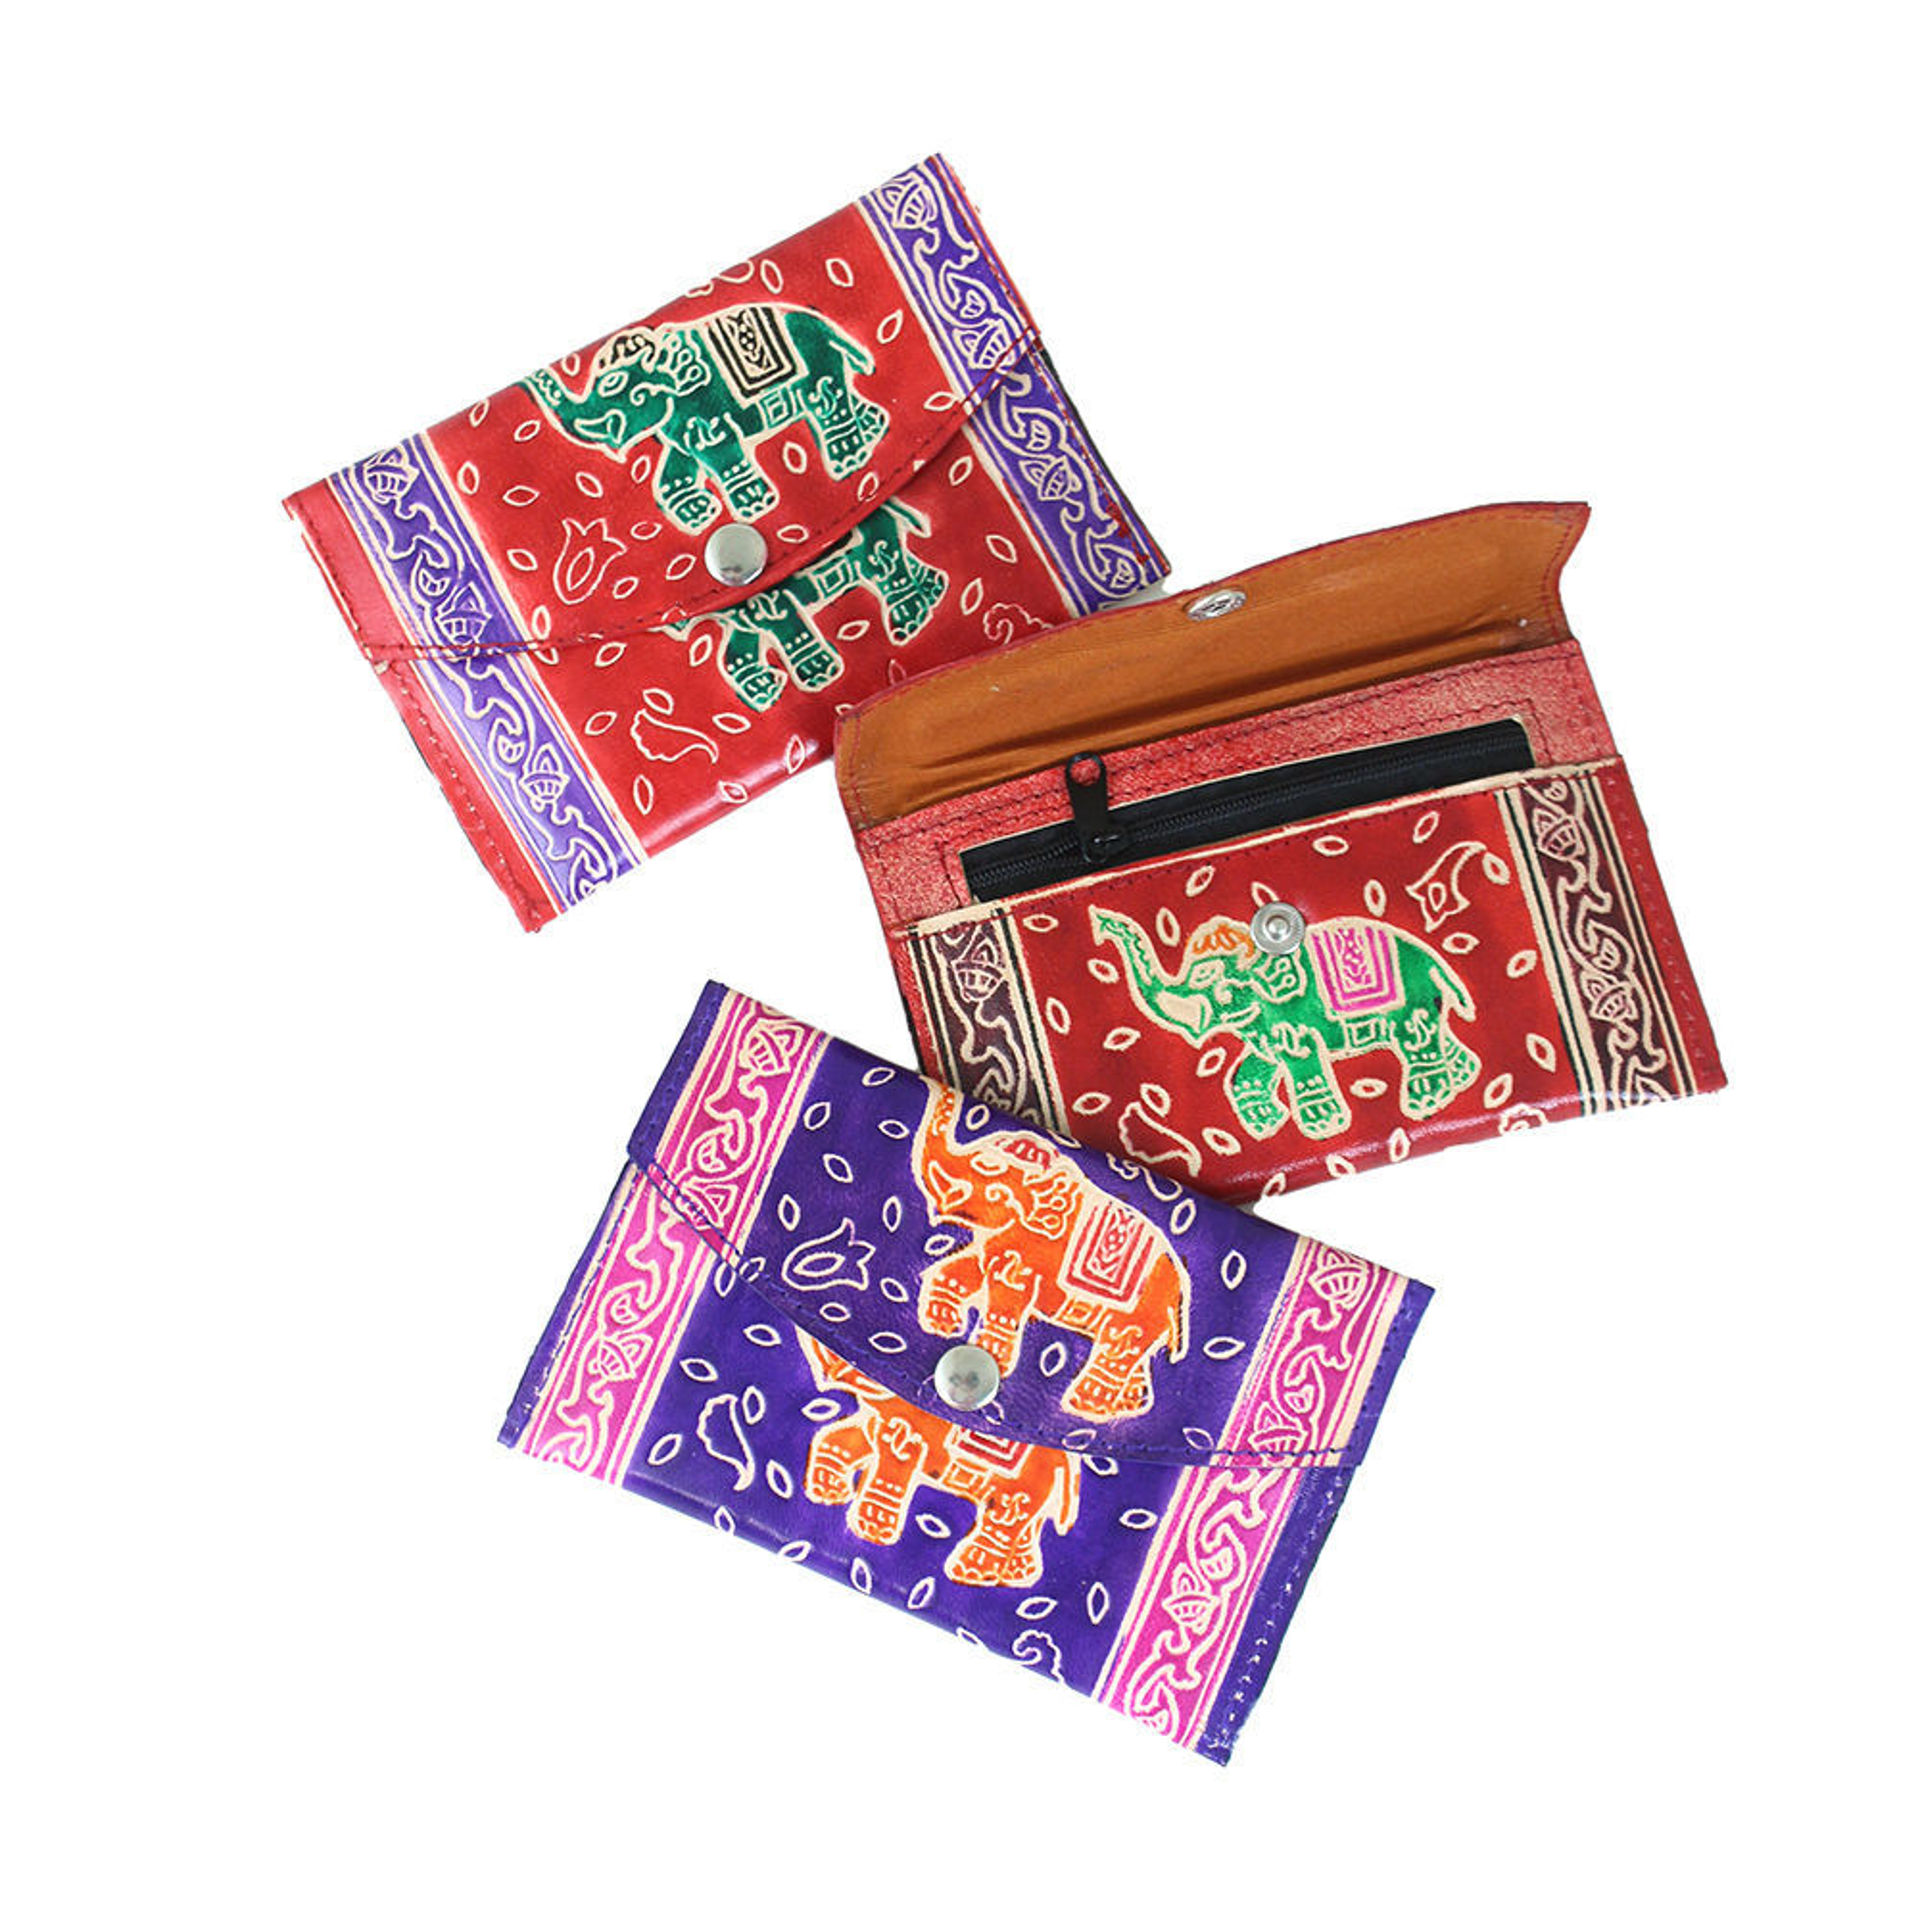 Picture of Leather Elephant Wallet ASSORTED COLORS